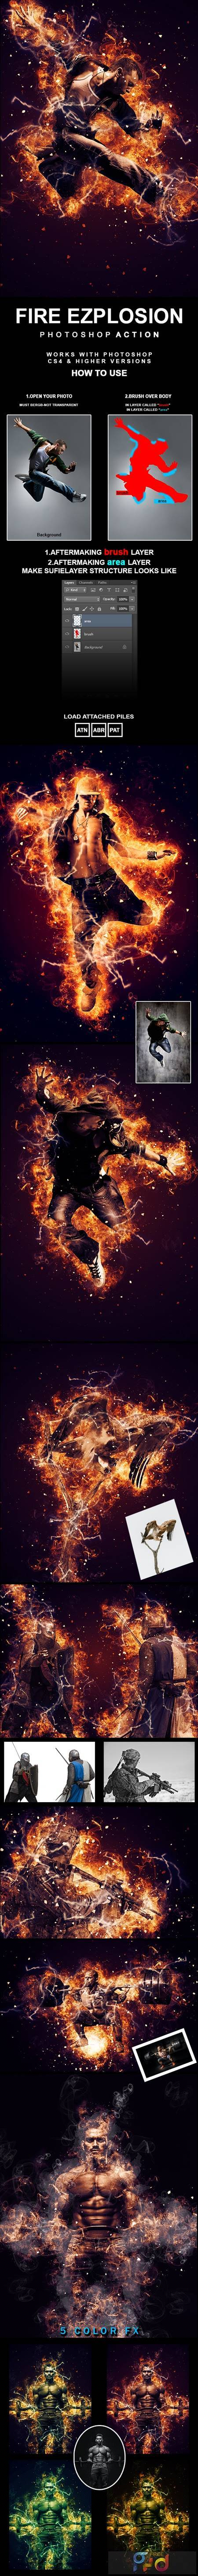 Fire Explosion Photoshop Action 27119145 1